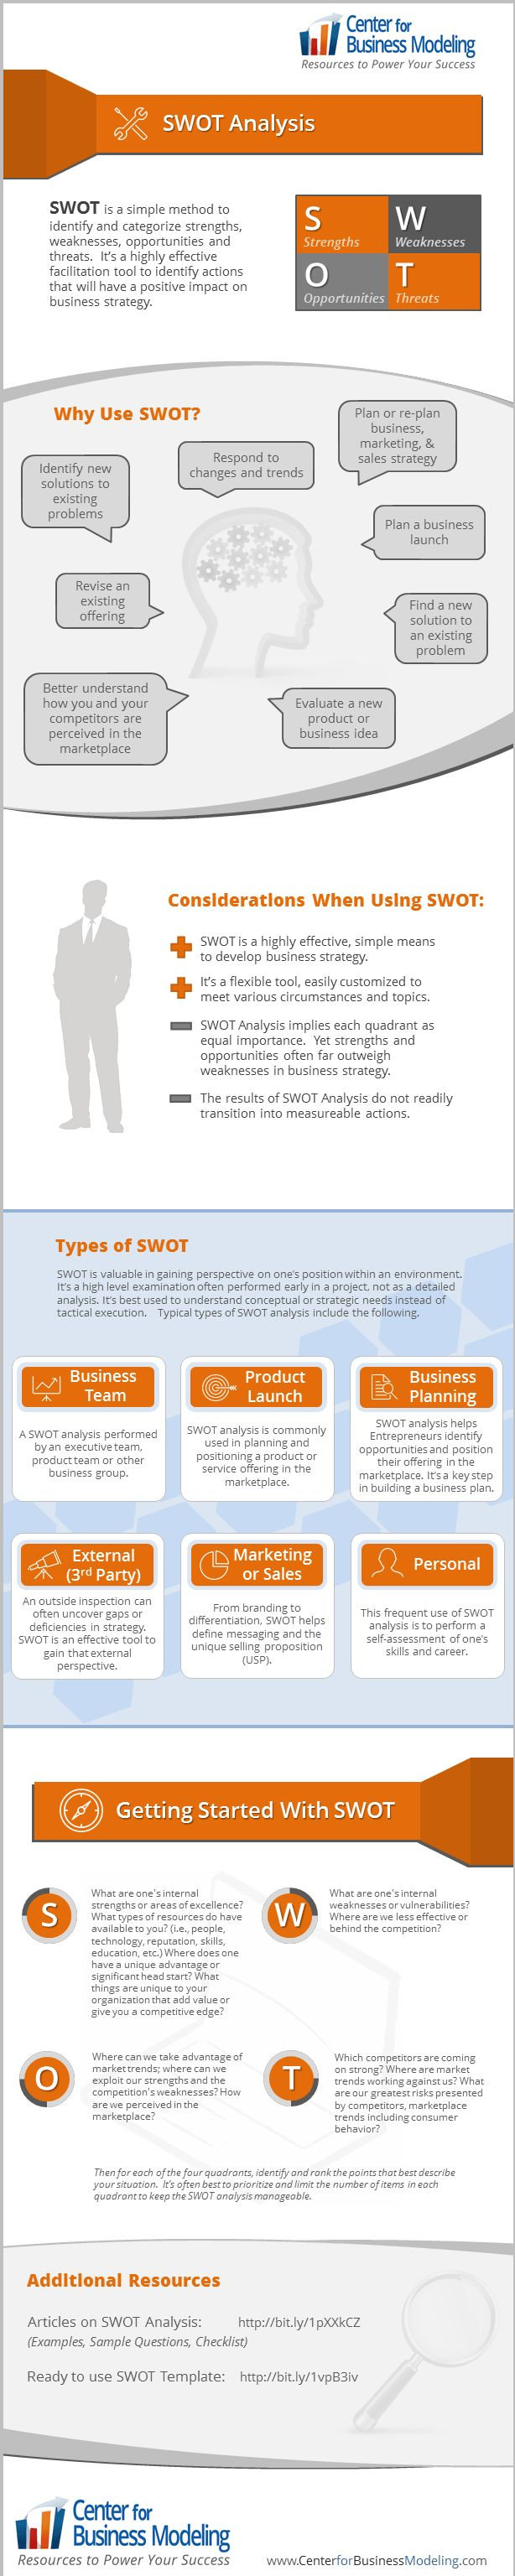 Introduction to SWOT What is a SWOT analysis? It is a simple method of planning that compartmentalizes important internal factors (strengths and weaknesses) and external factors (opportunities and...